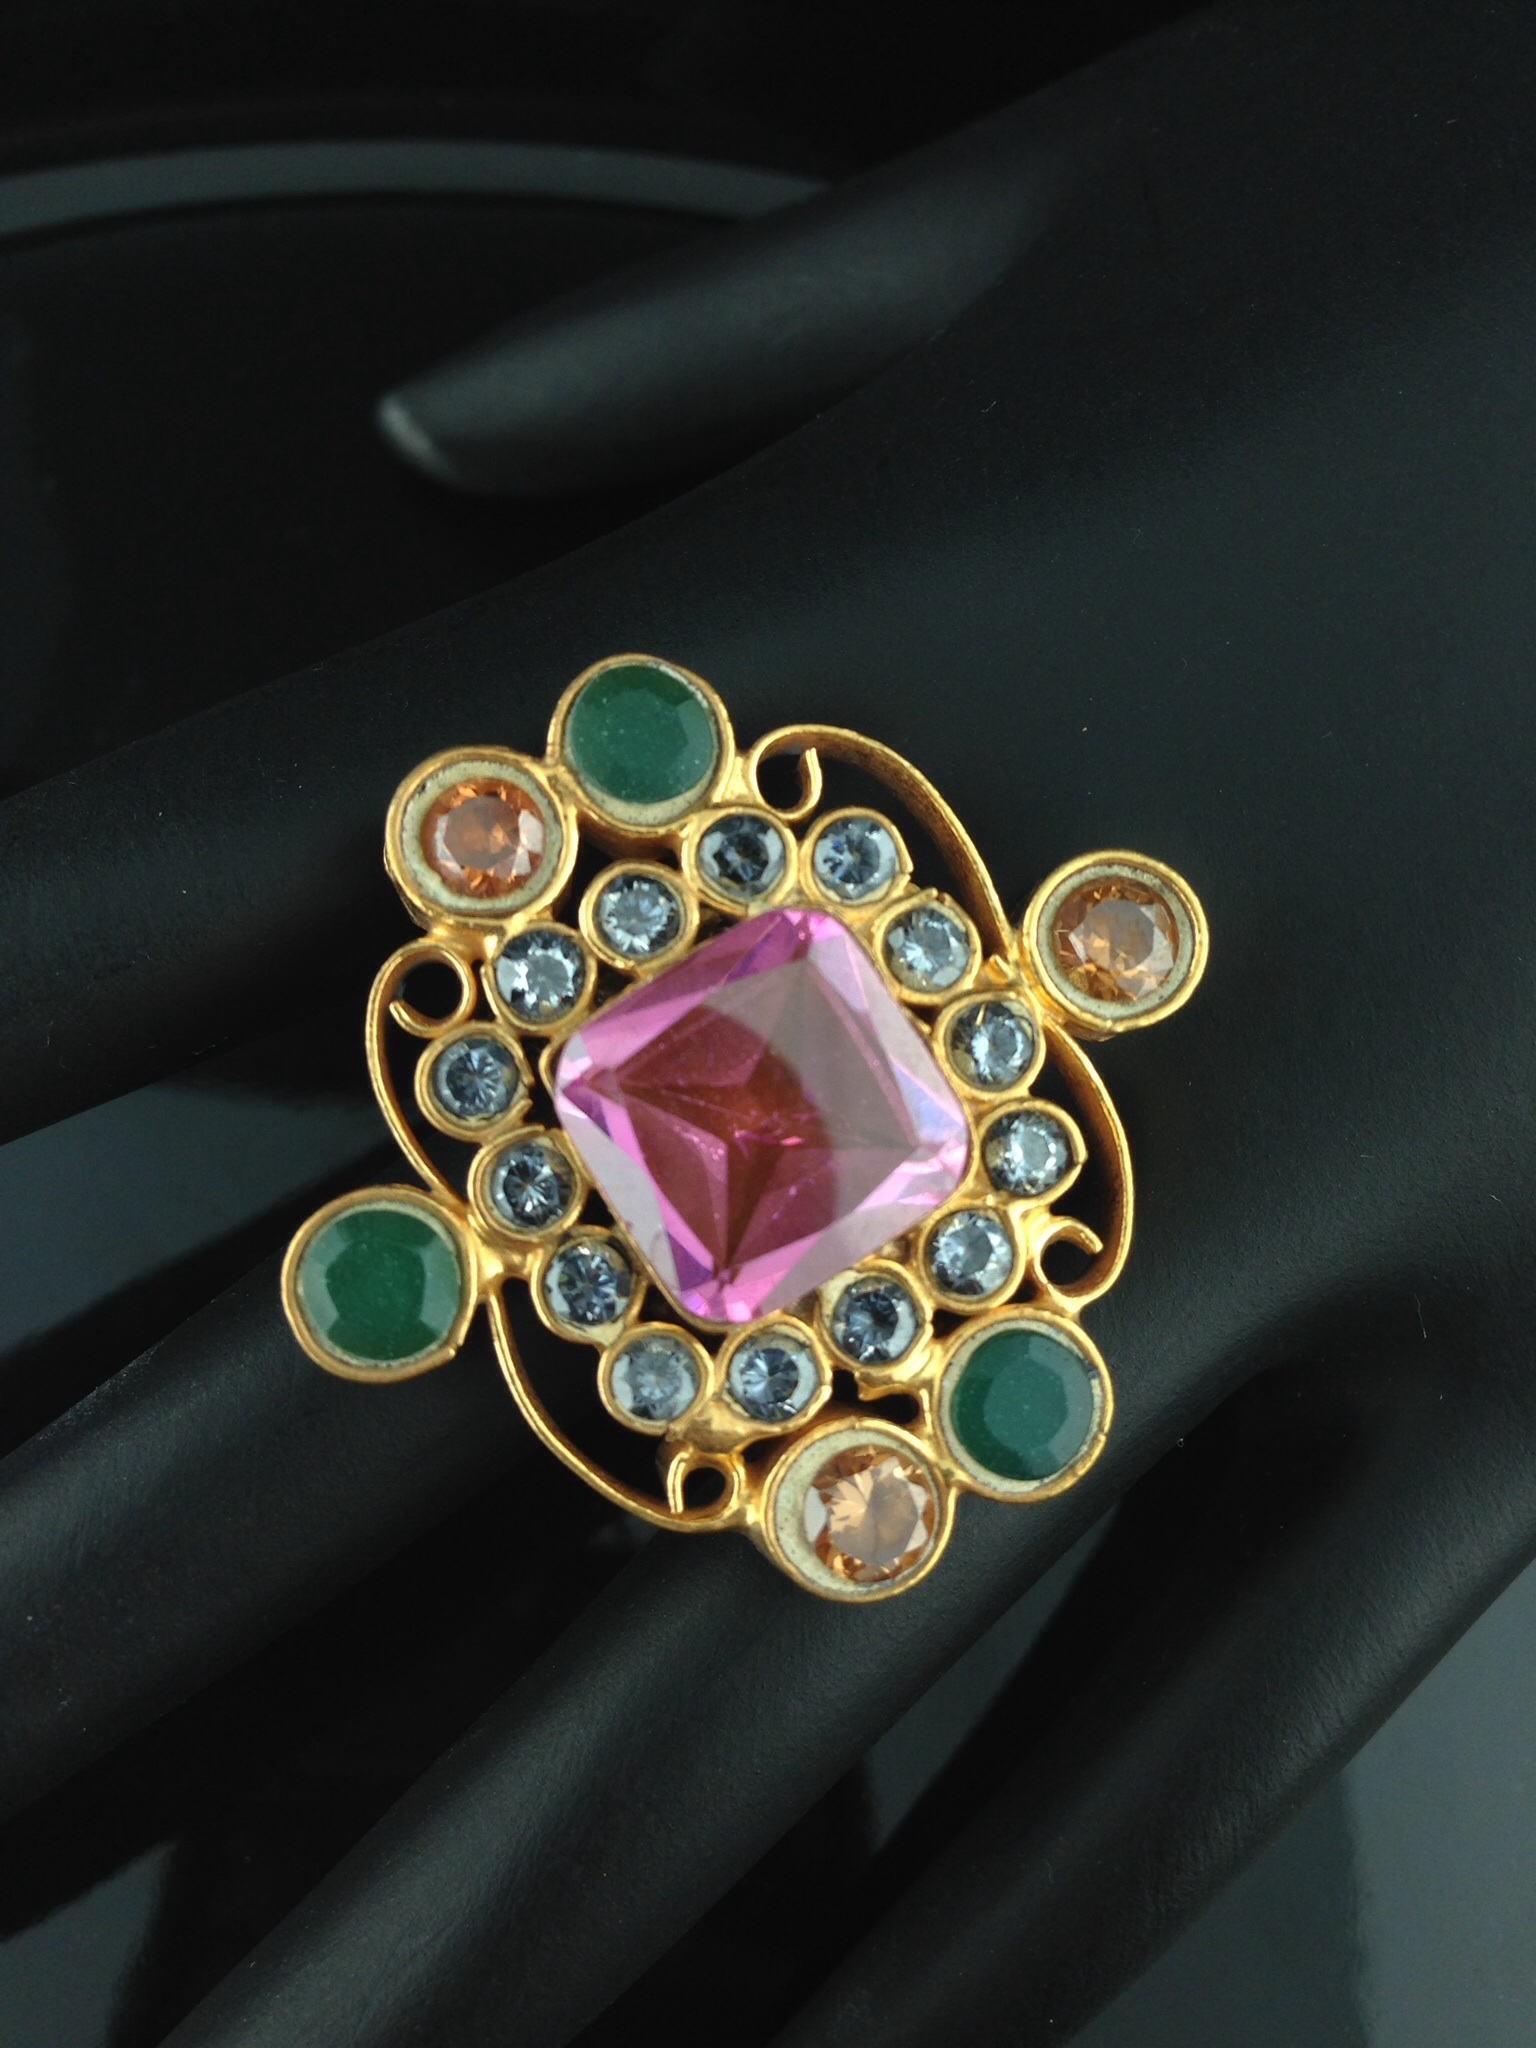 Adjustable Kundan Rings with Crystals, Emerald and Champagne Sto